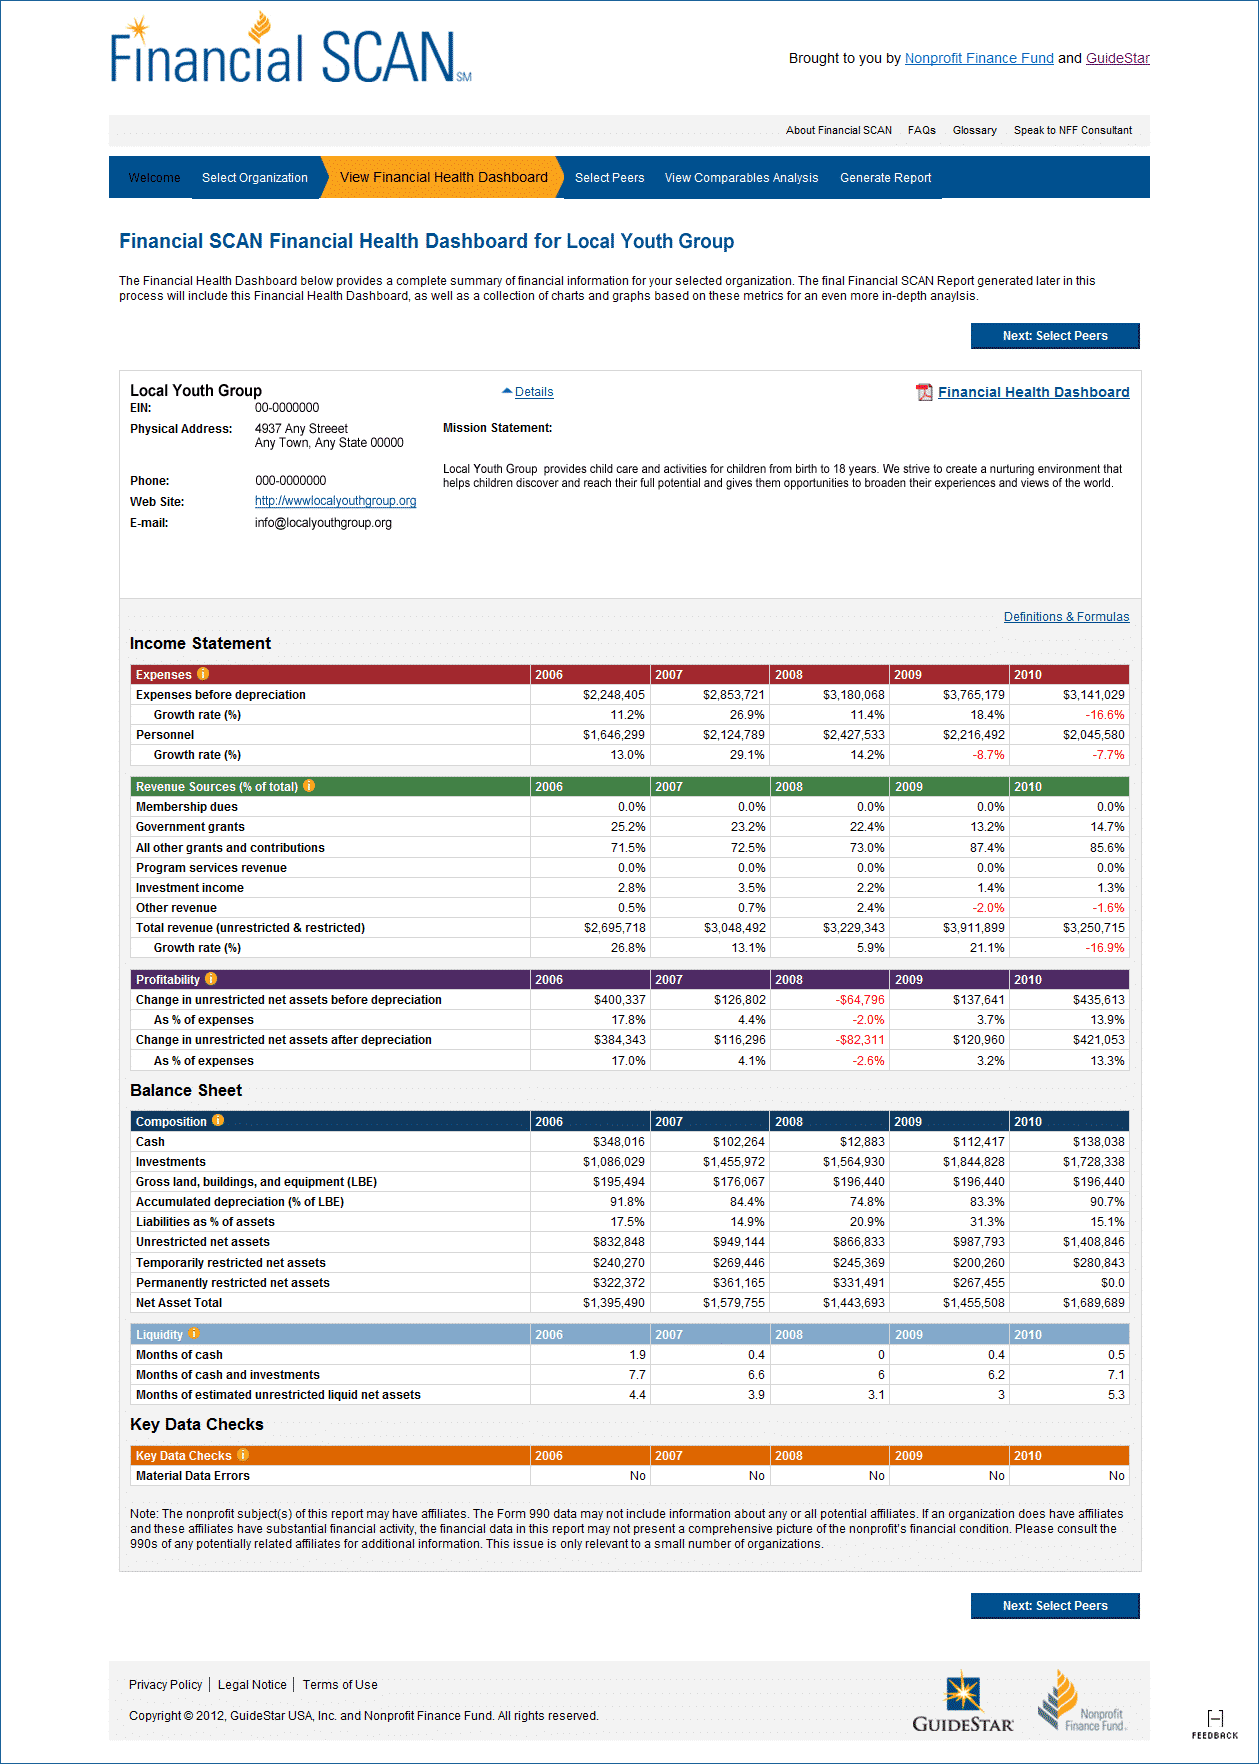 Sample Financial Report for Non-profit organization and Financial Scan for Nonprofits